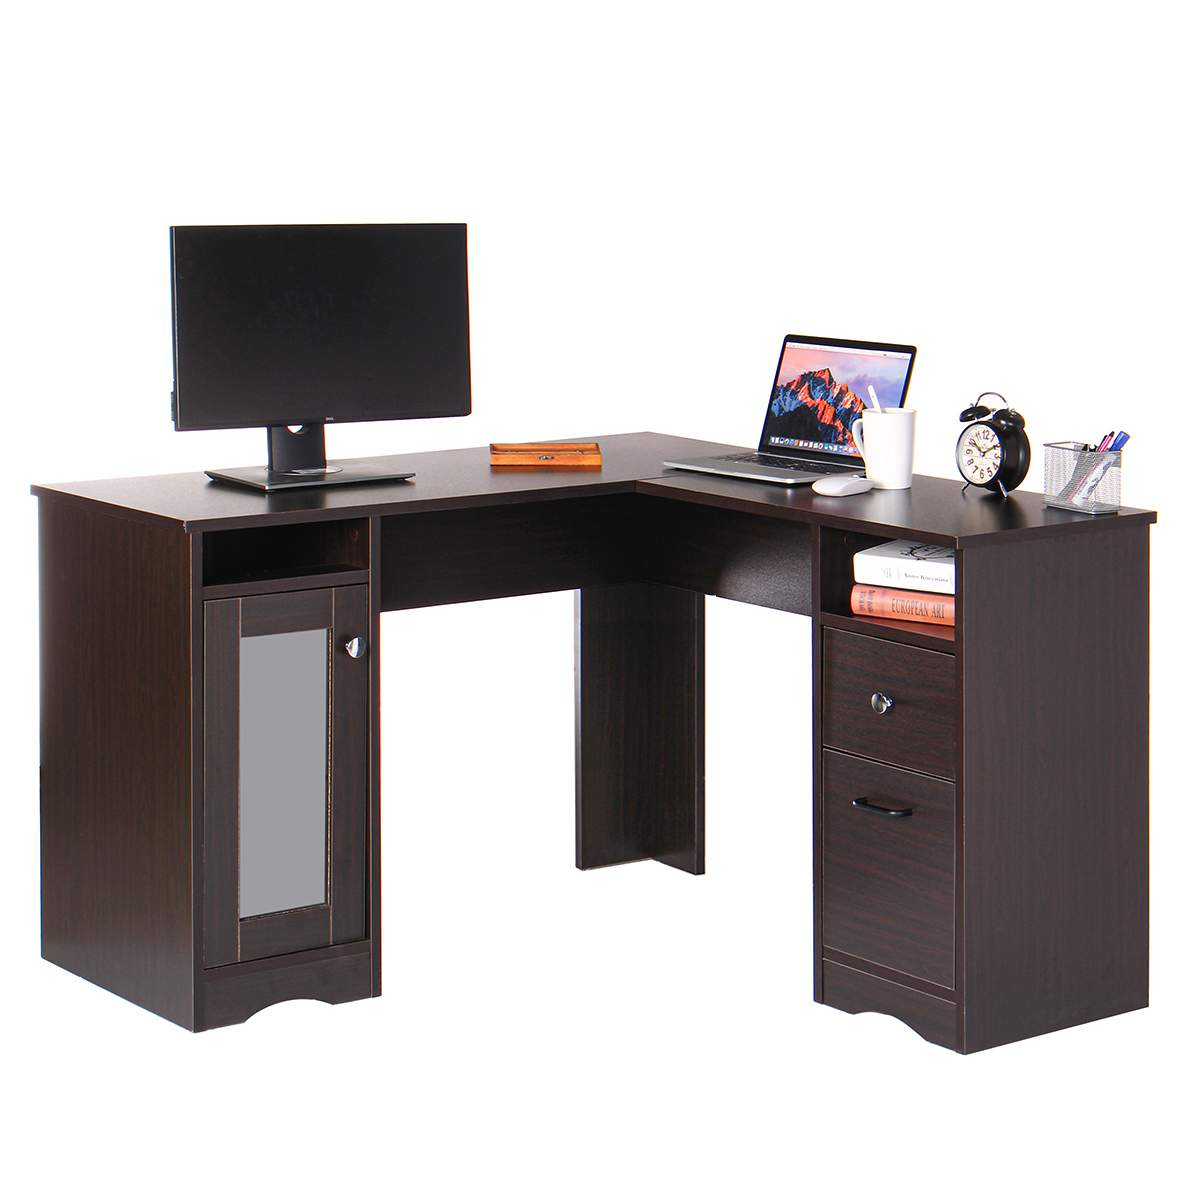 47.2X47.2X29.5in Folding Corner Computer Table Desk L-Shape PC Laptop Stand Desk Home Office Workstation Study Writing Table